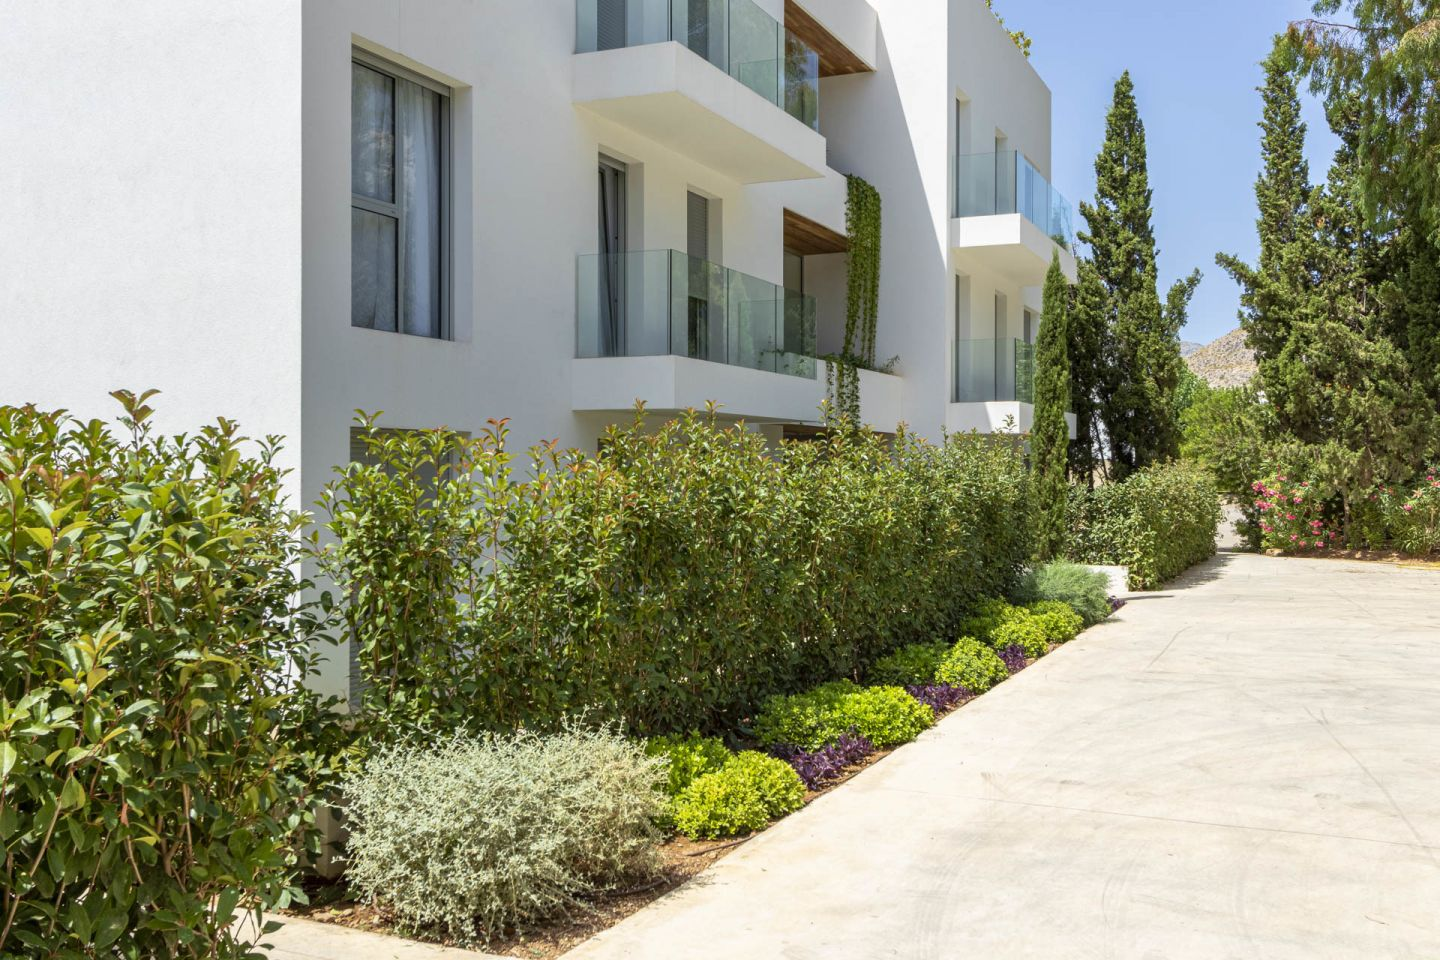 3 Bed Apartment for sale in PUERTO POLLENSA 19